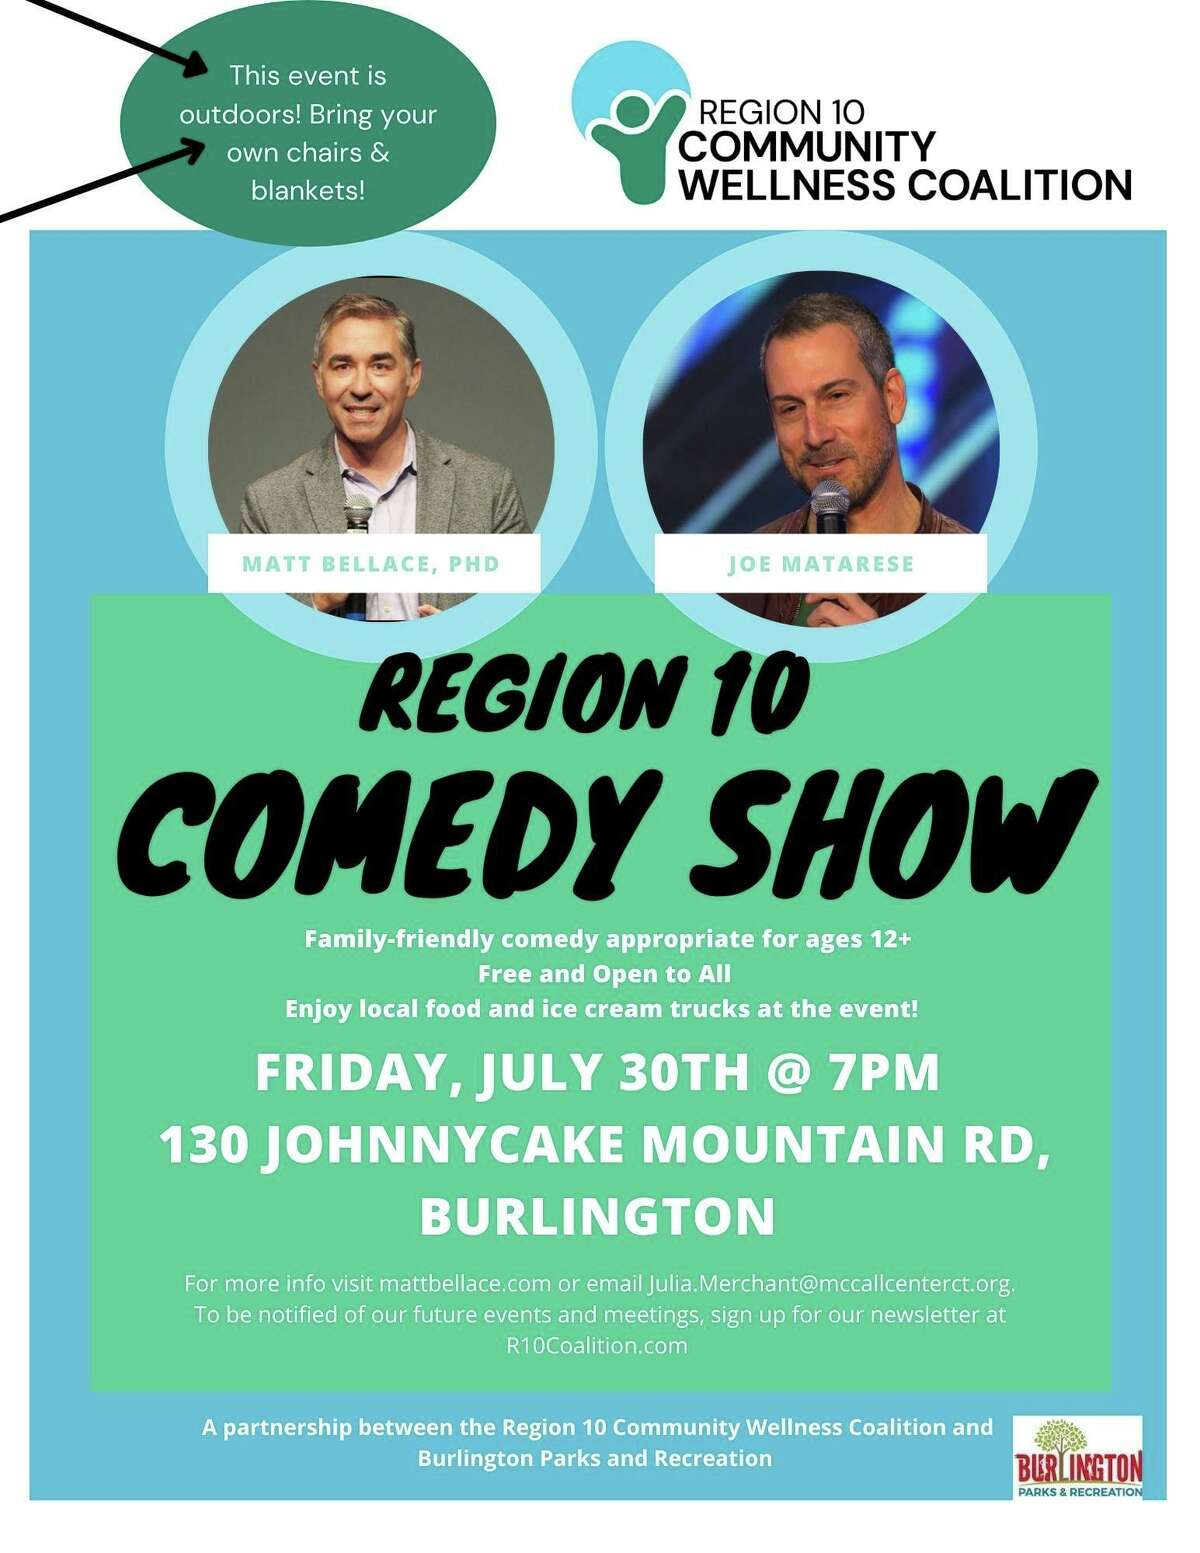 The Region 10 Community Wellness Coalition is partnering with Burlington, CT's Department of Parks and Recreation to host a free comedy show at 7 p.m. on July 30, 130 Johnnycake Mountain Road, the home of Johnnycake Mountain Farm.